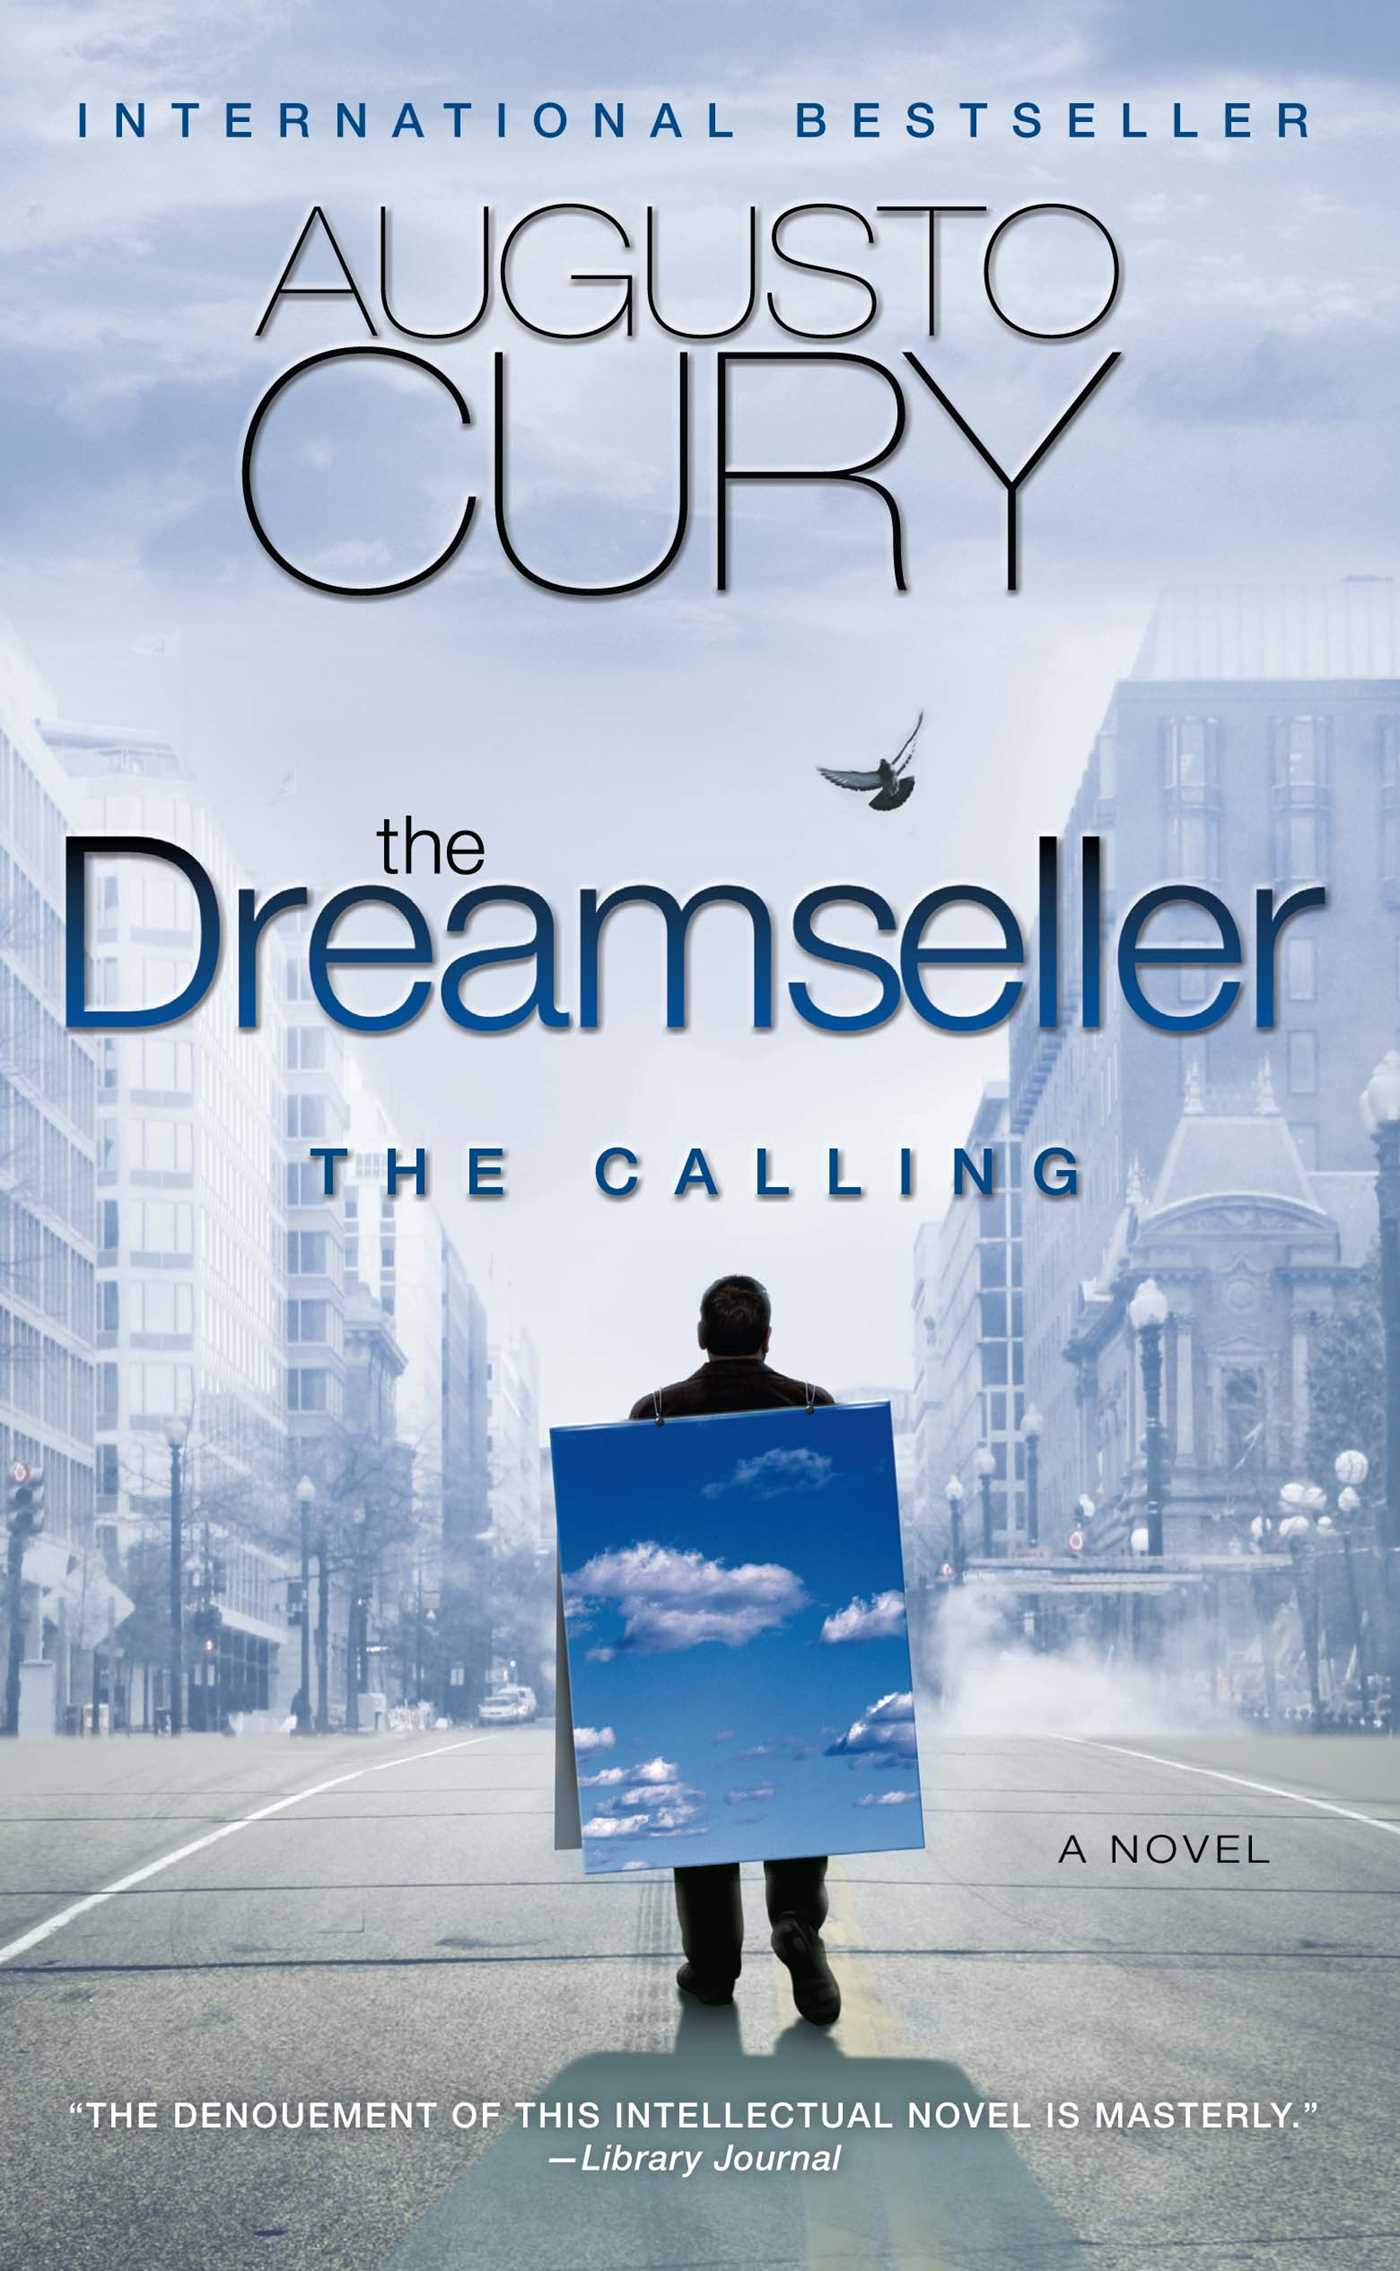 Dreamseller-the-calling-9781439195734_hr